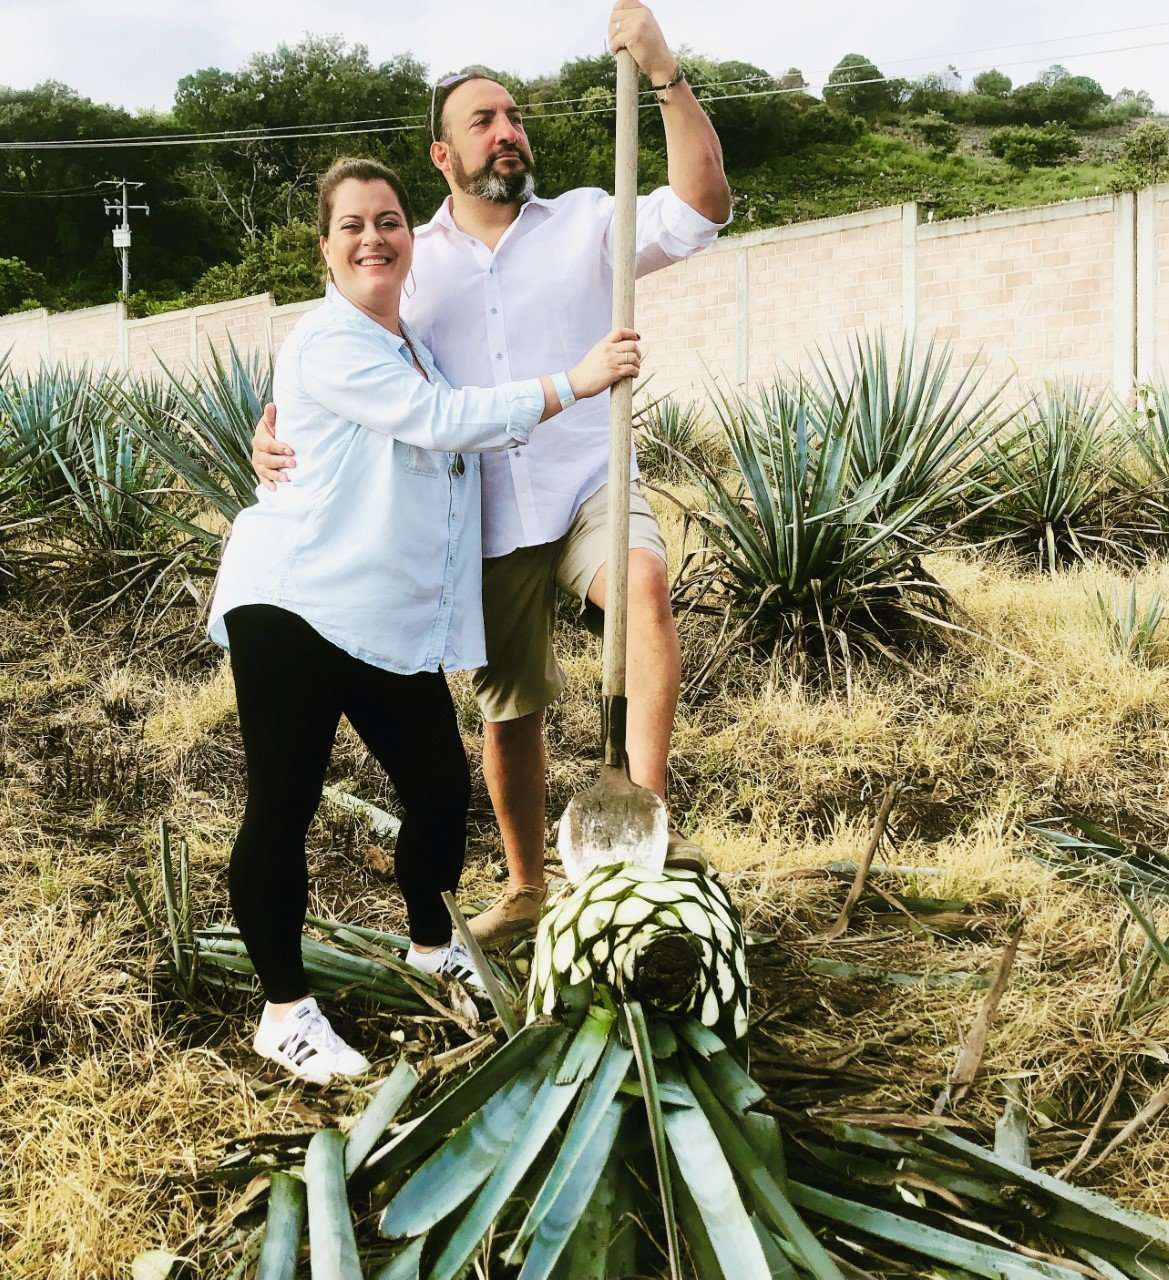 Tequila Tour for 2 hosted by Larry & Jessica Delgado